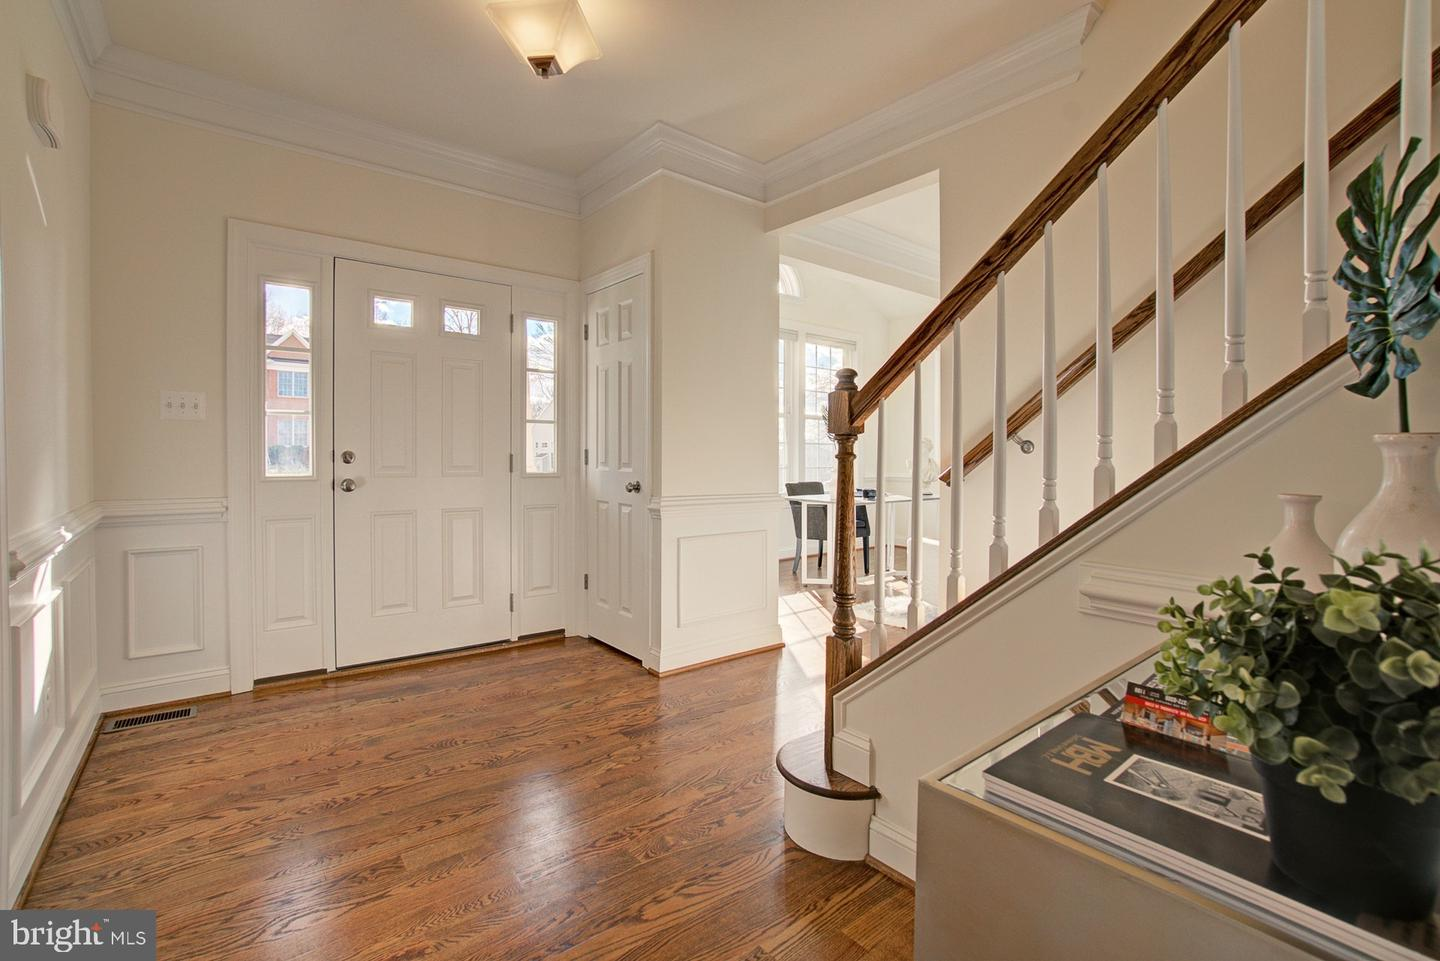 Additional photo for property listing at 4326 Agnew Ave 4326 Agnew Ave Alexandria, Virginia 22309 United States